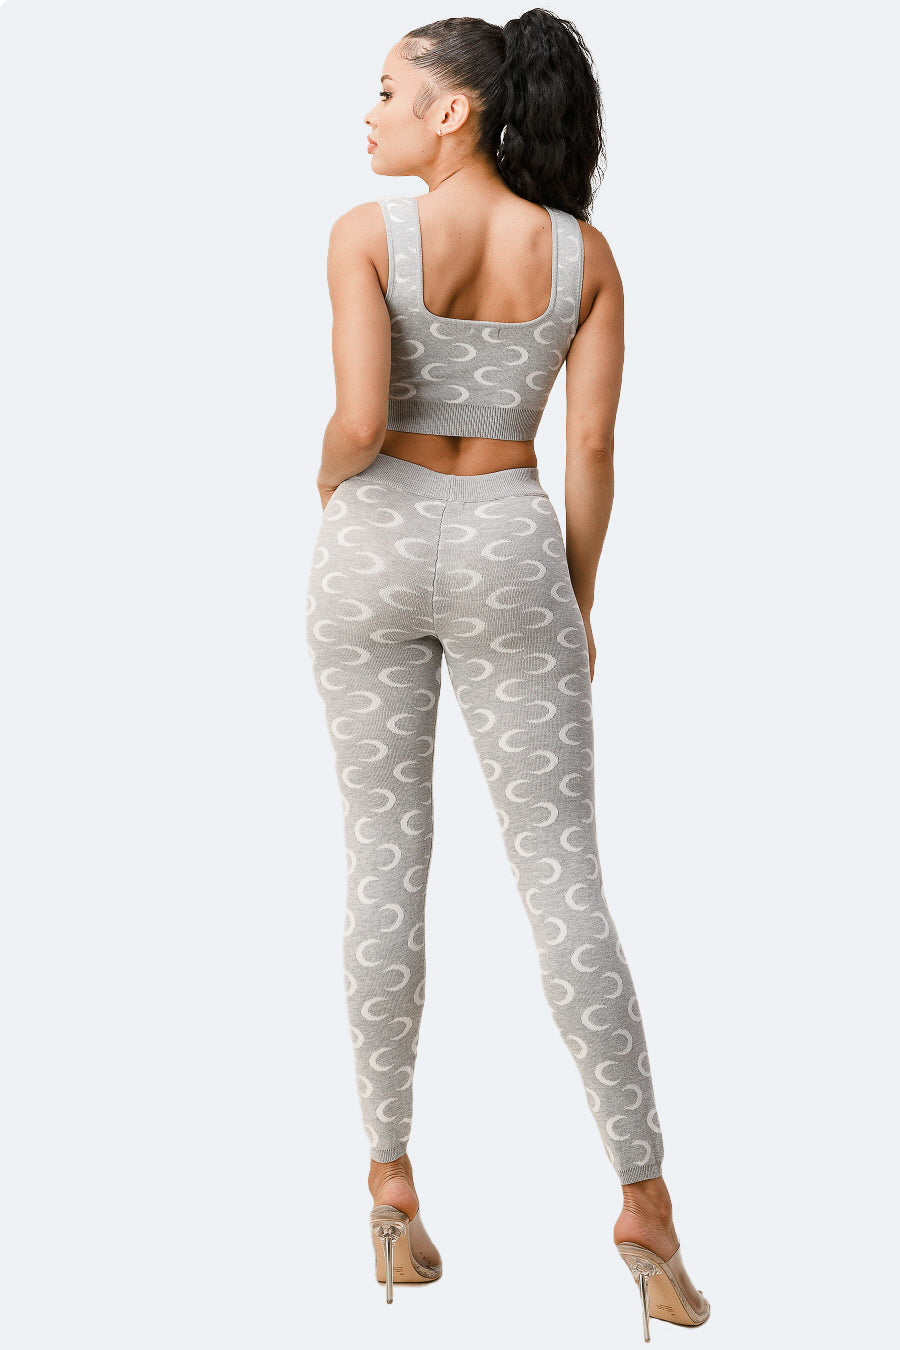 To the Moon Knit Crop Top Leggings Set in Grey - Fashion House USA